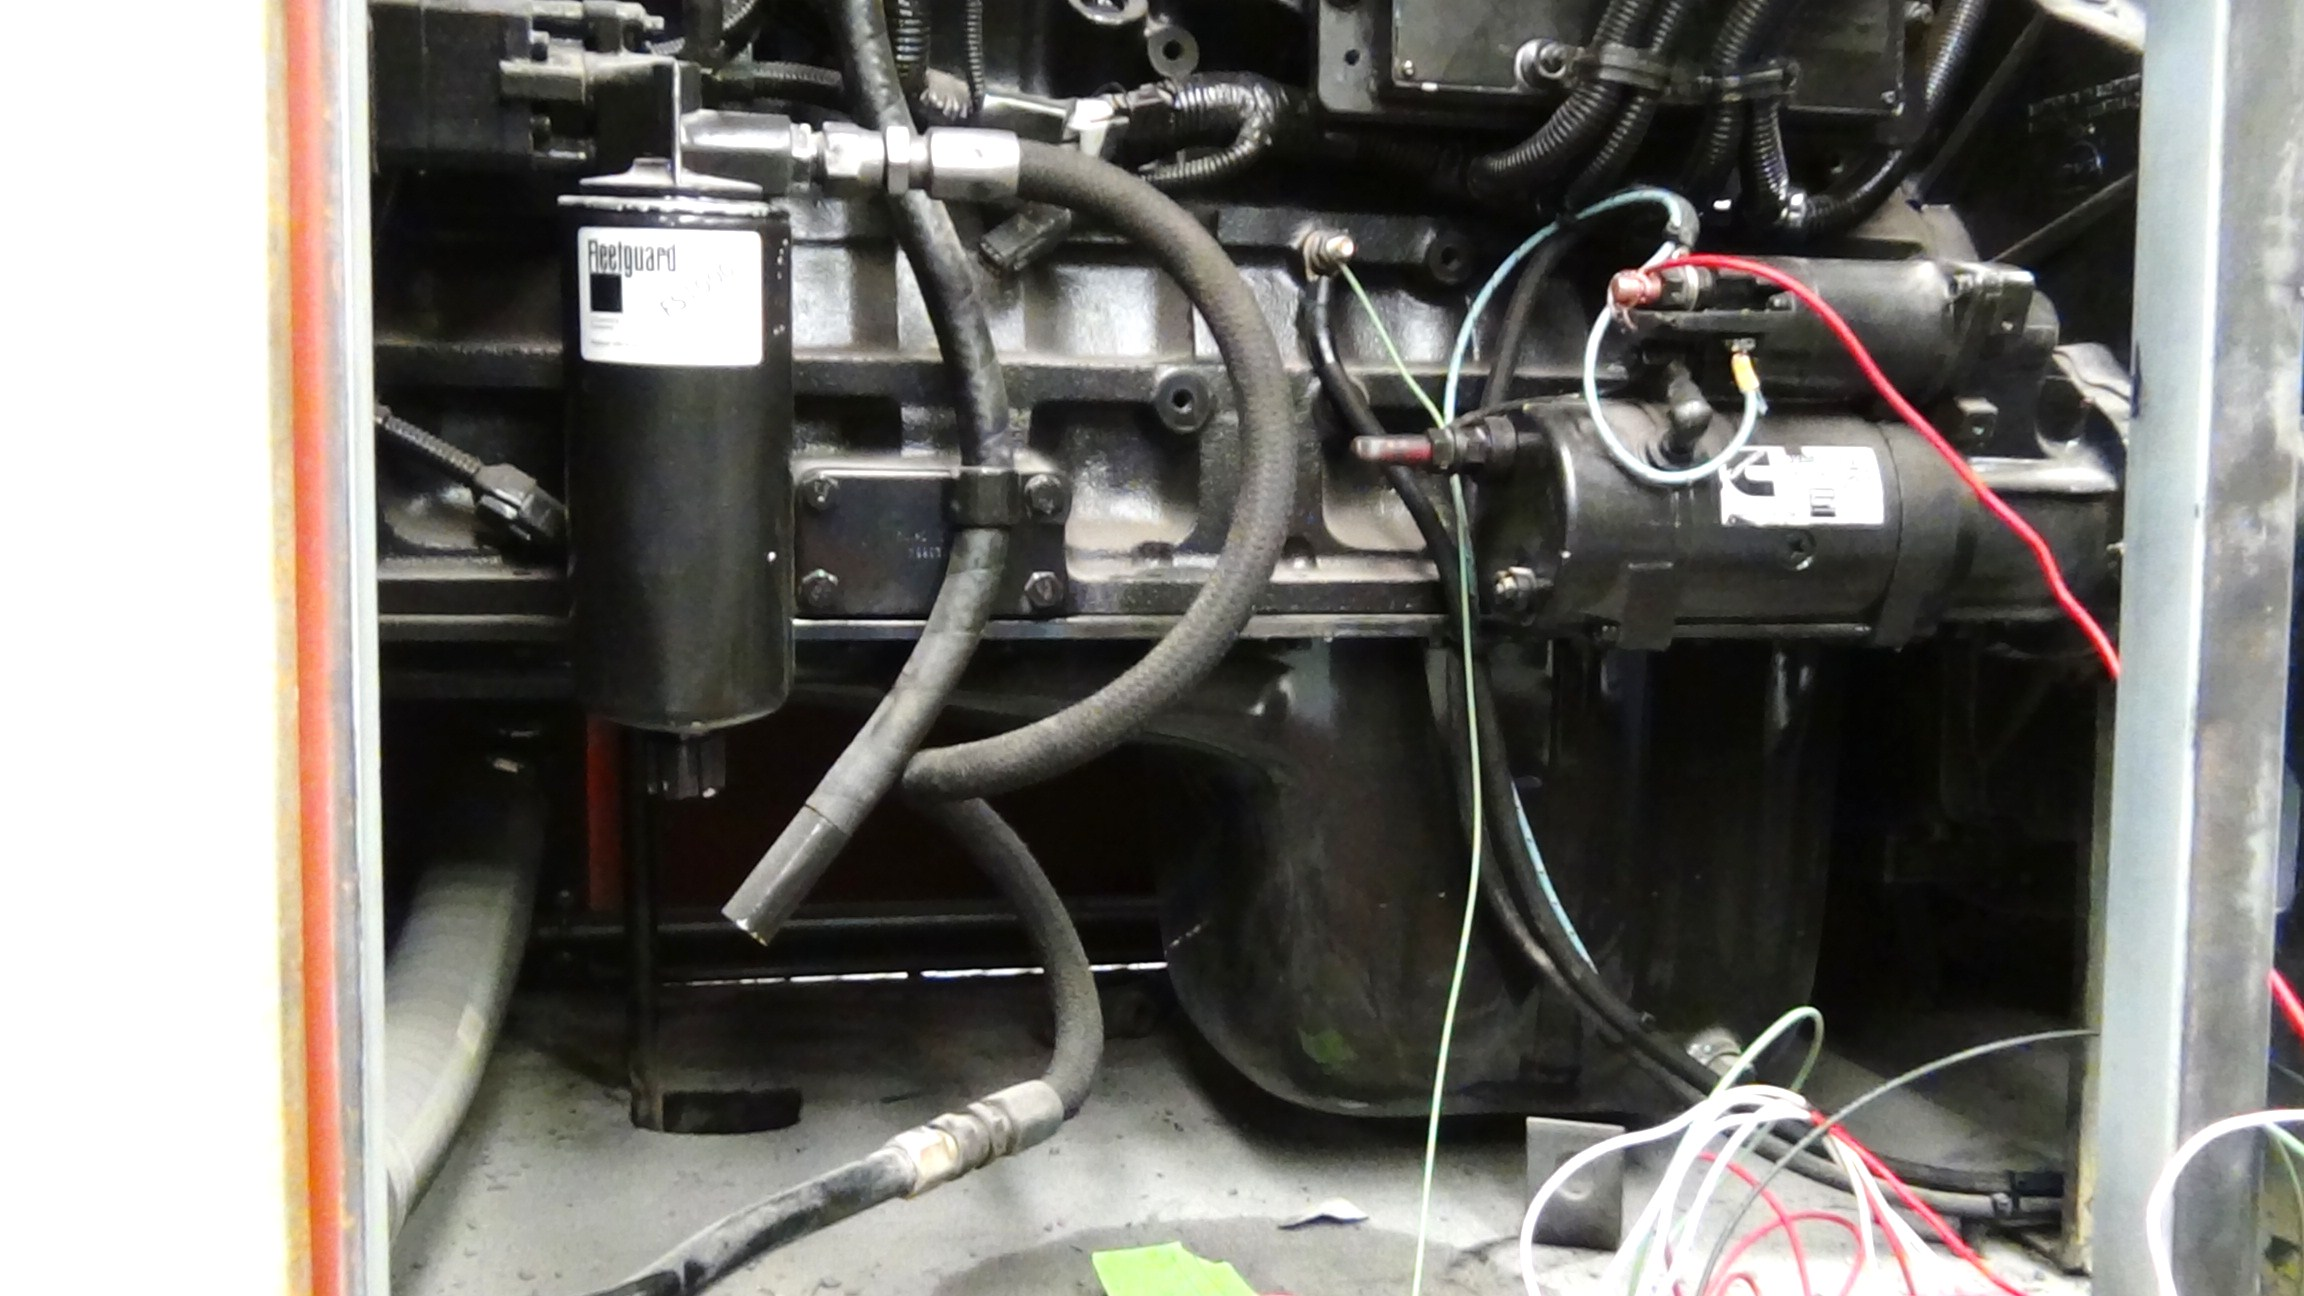 To My Knowledge All Industrial Diesel Engine Have A Primary Fuel Filter As You Can See On The Picture Is Directly Supply From Tank With